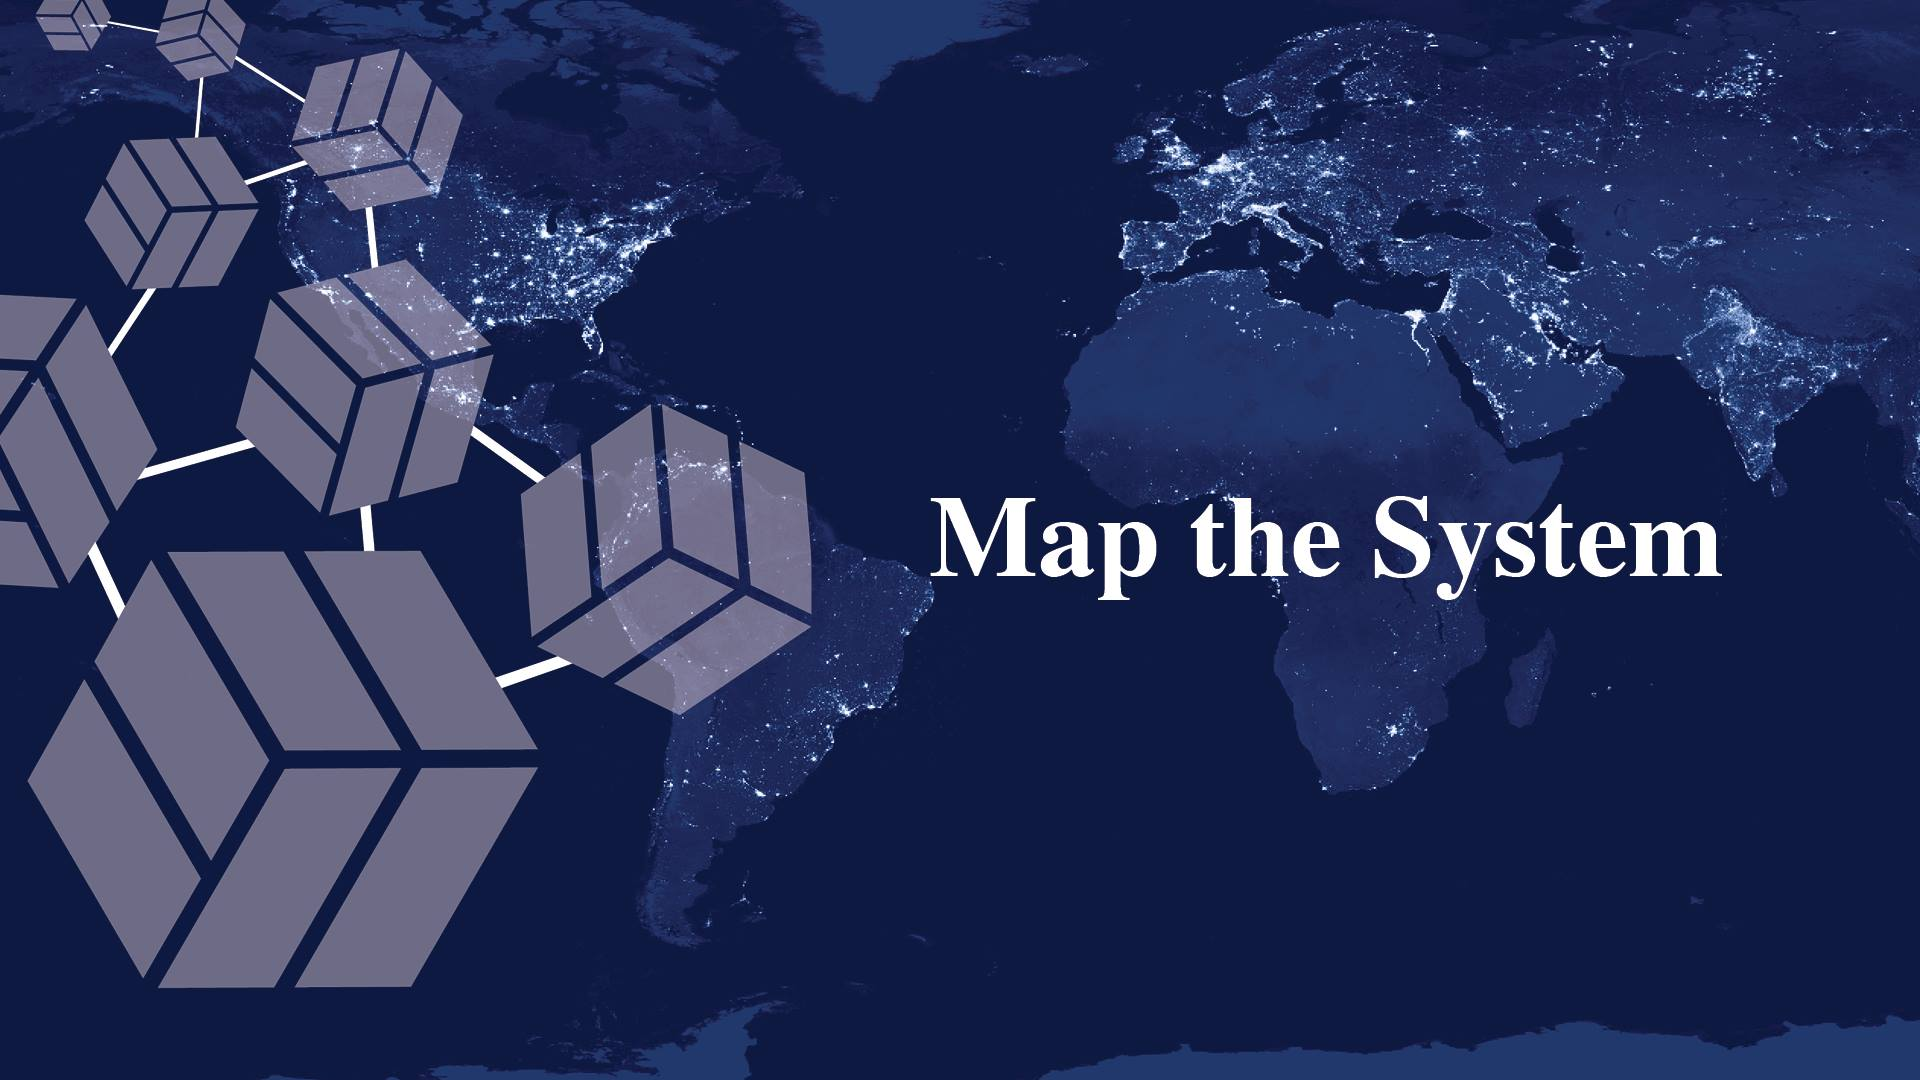 """Map the System"" text on top of globe background"